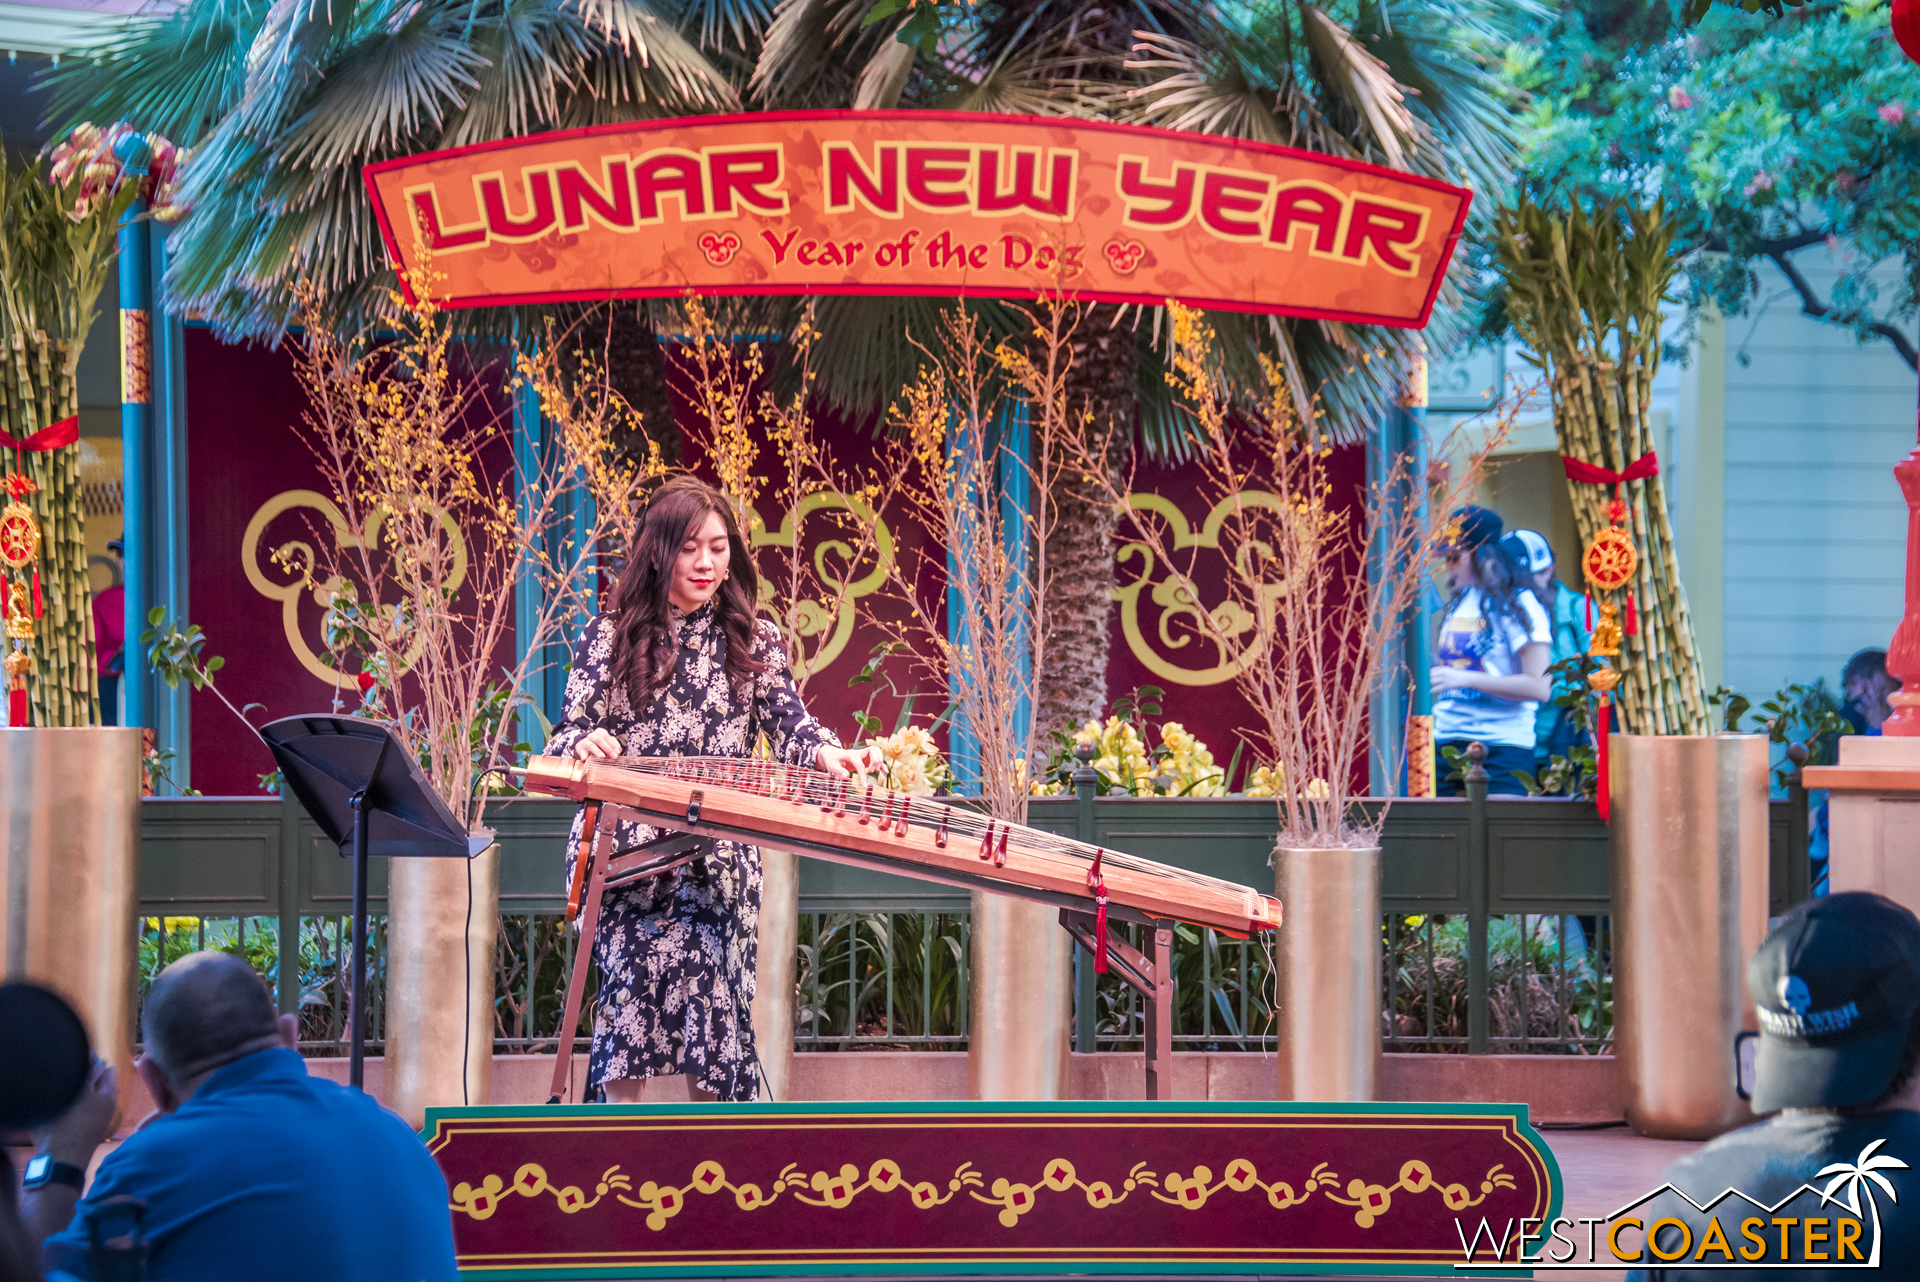 Luna Lee has several 15 minute sets in the Paradise Garden Bandstand.